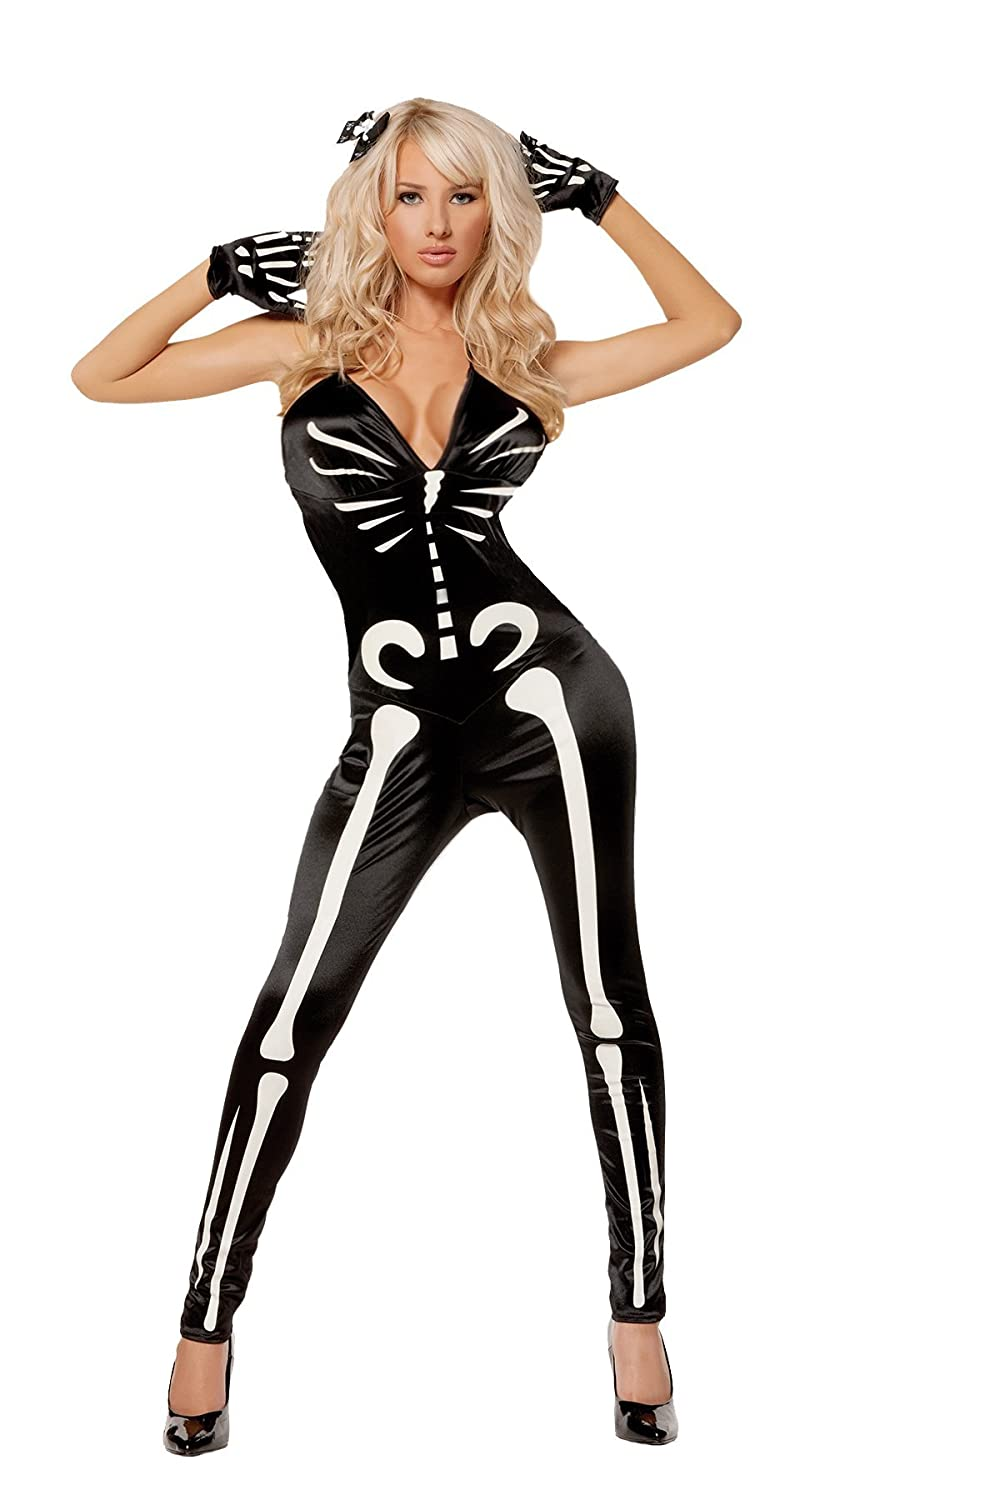 Amazon.com Sexy Womenu0027s Glow In The Dark Skeleton Jumpsuit Roleplay Costume Clothing  sc 1 st  Amazon.com & Amazon.com: Sexy Womenu0027s Glow In The Dark Skeleton Jumpsuit Roleplay ...